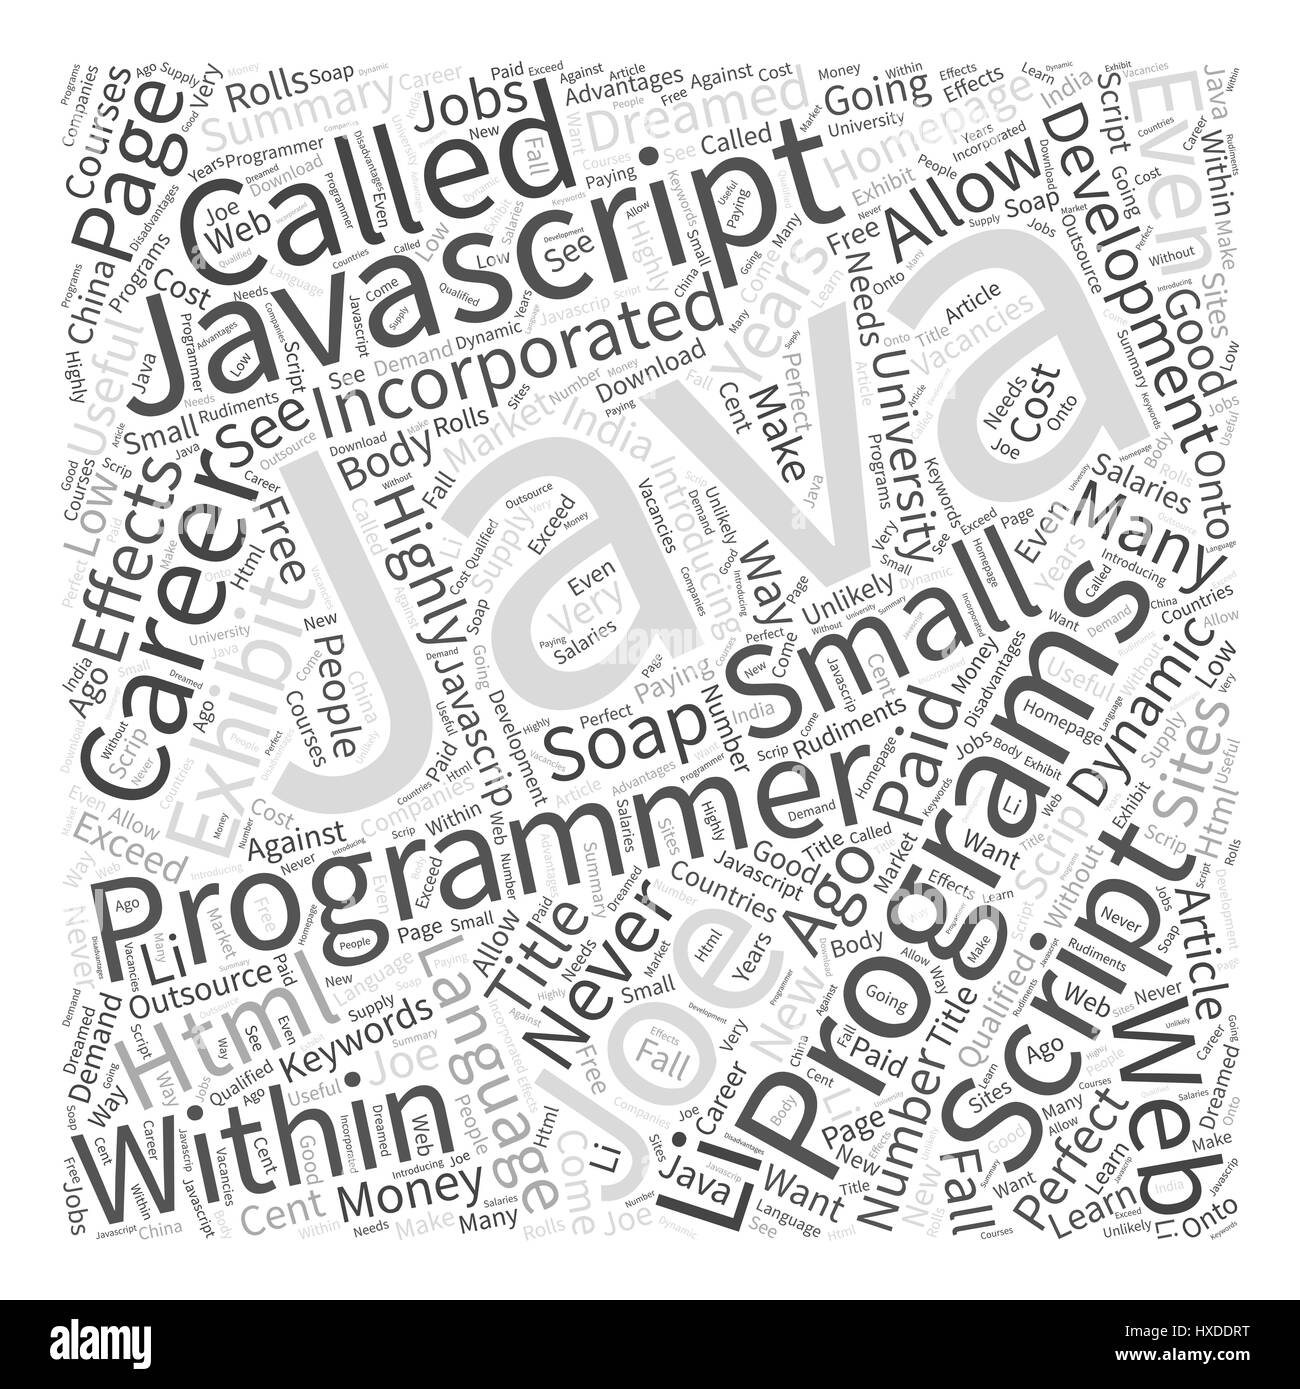 Javascript Cloud Javascript Programmer Is It Your Perfect Career Word Cloud Concept